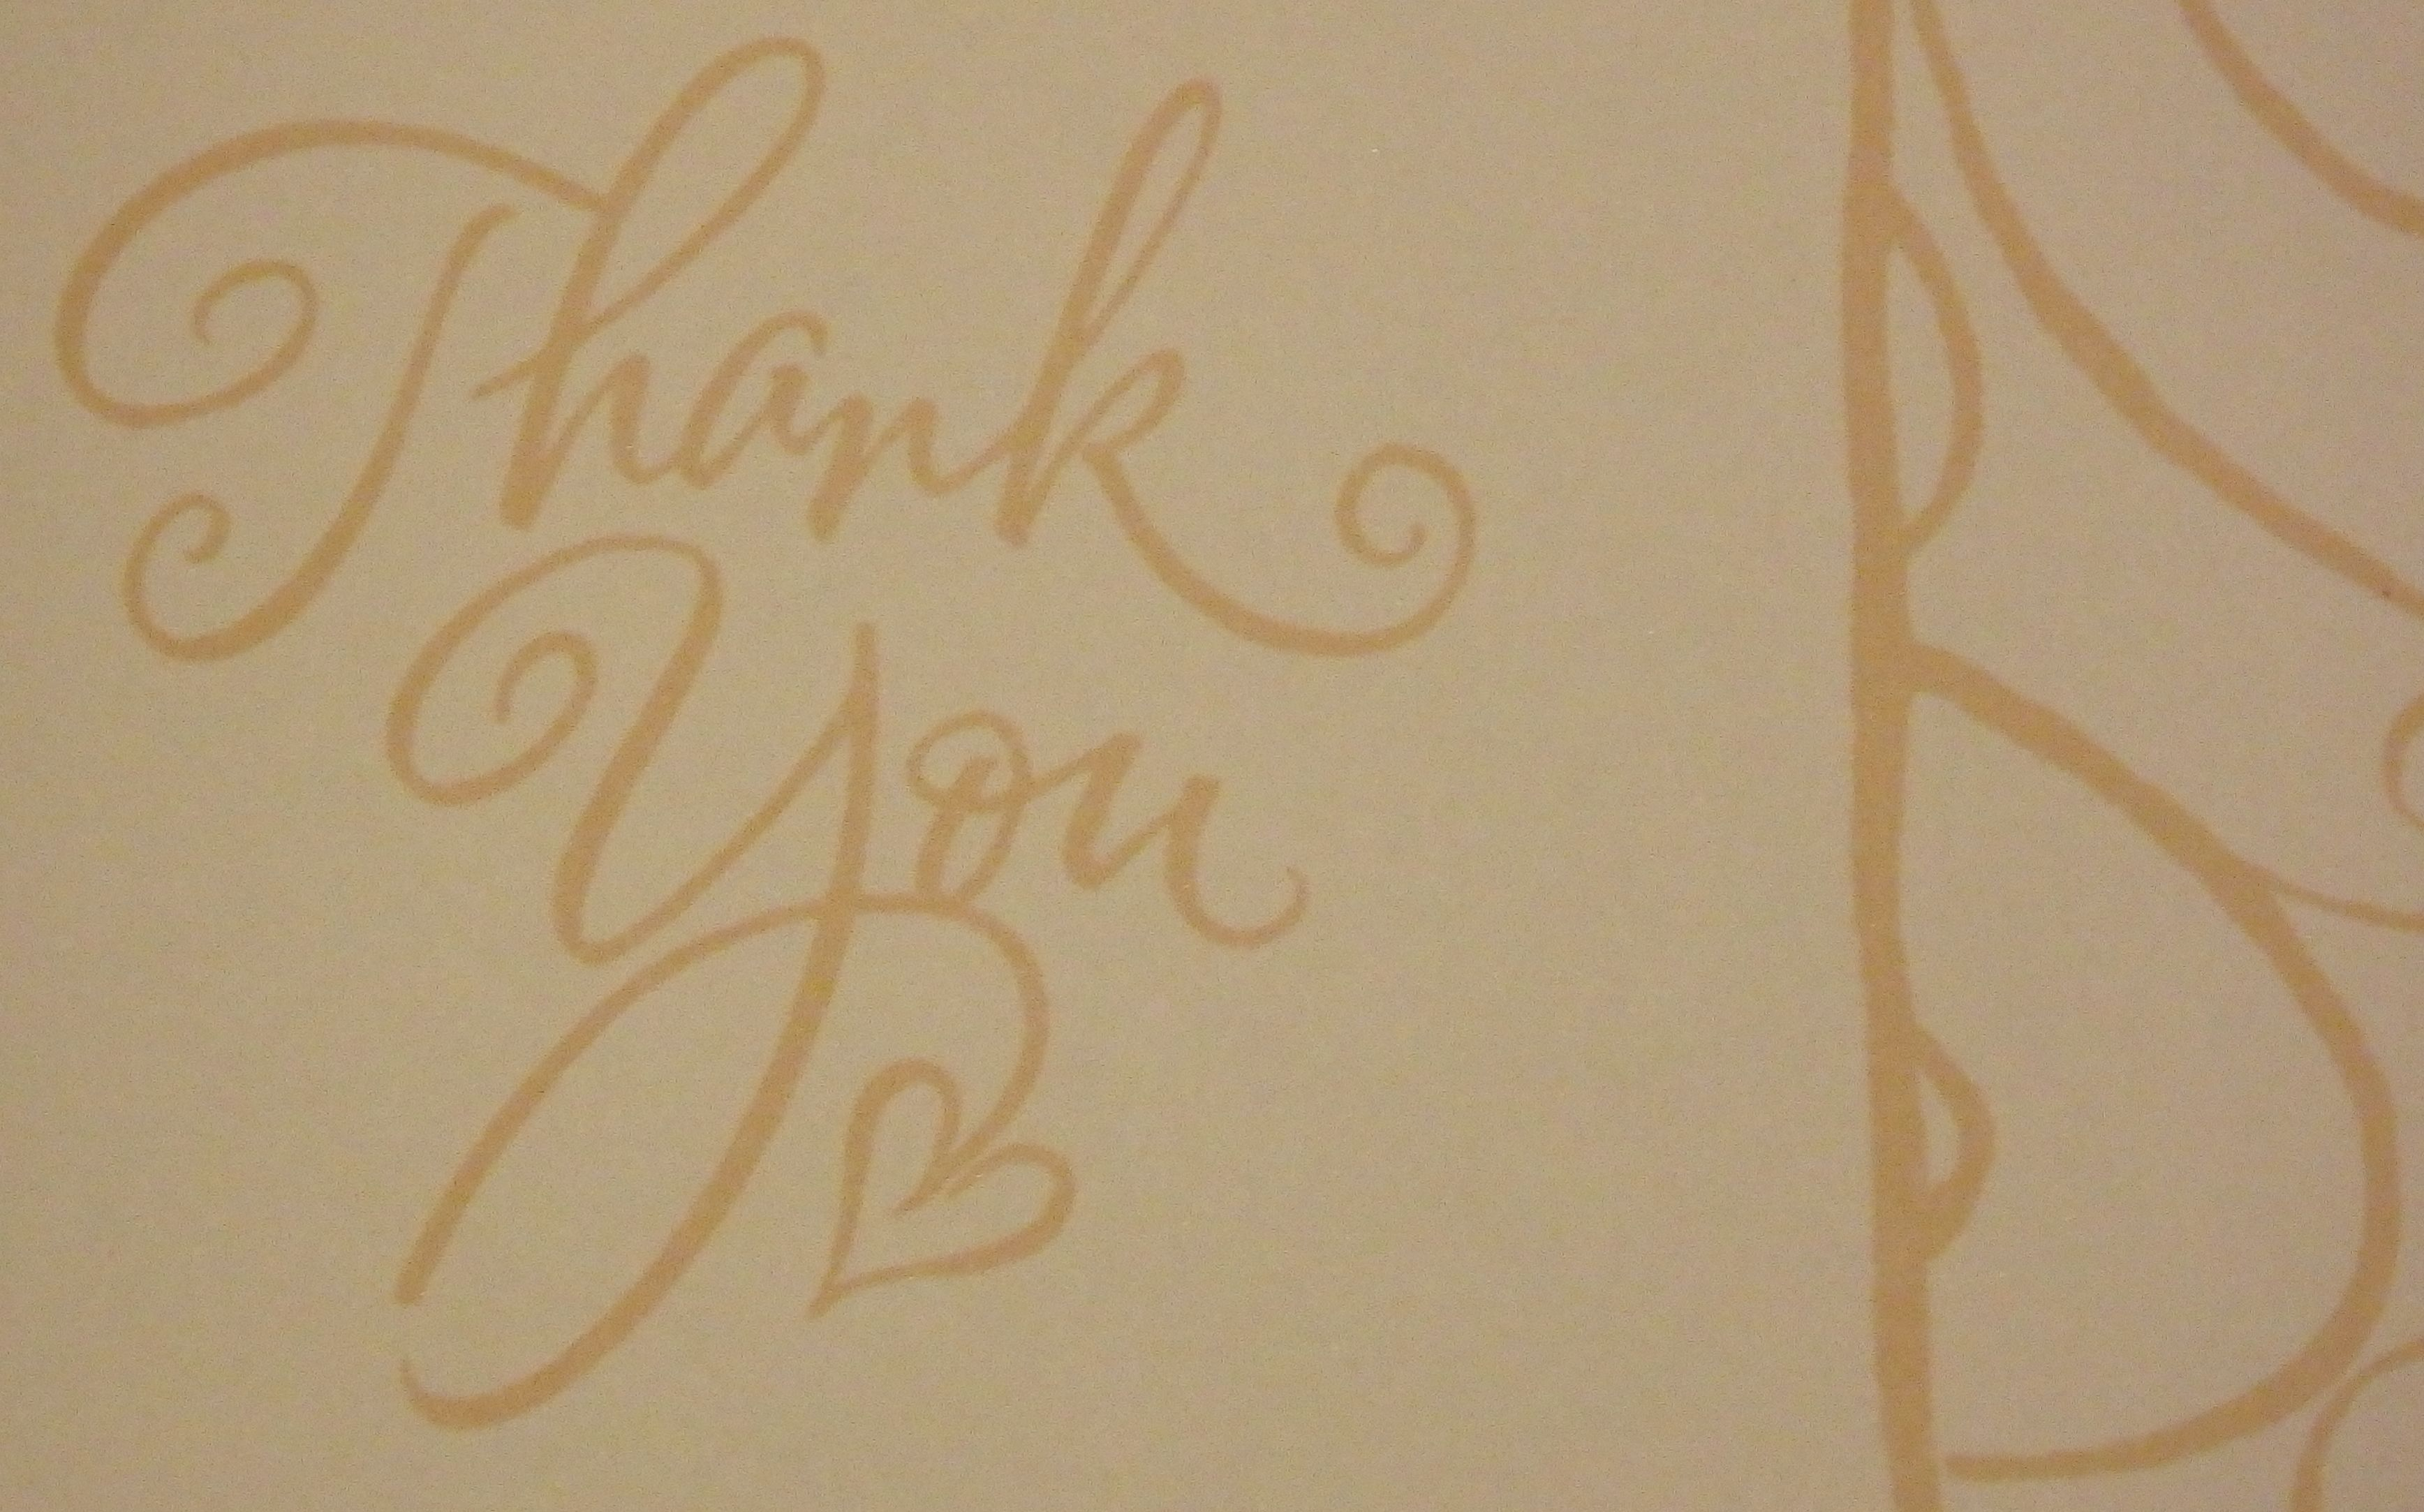 How To Write (And Not Write) A Thank You Note